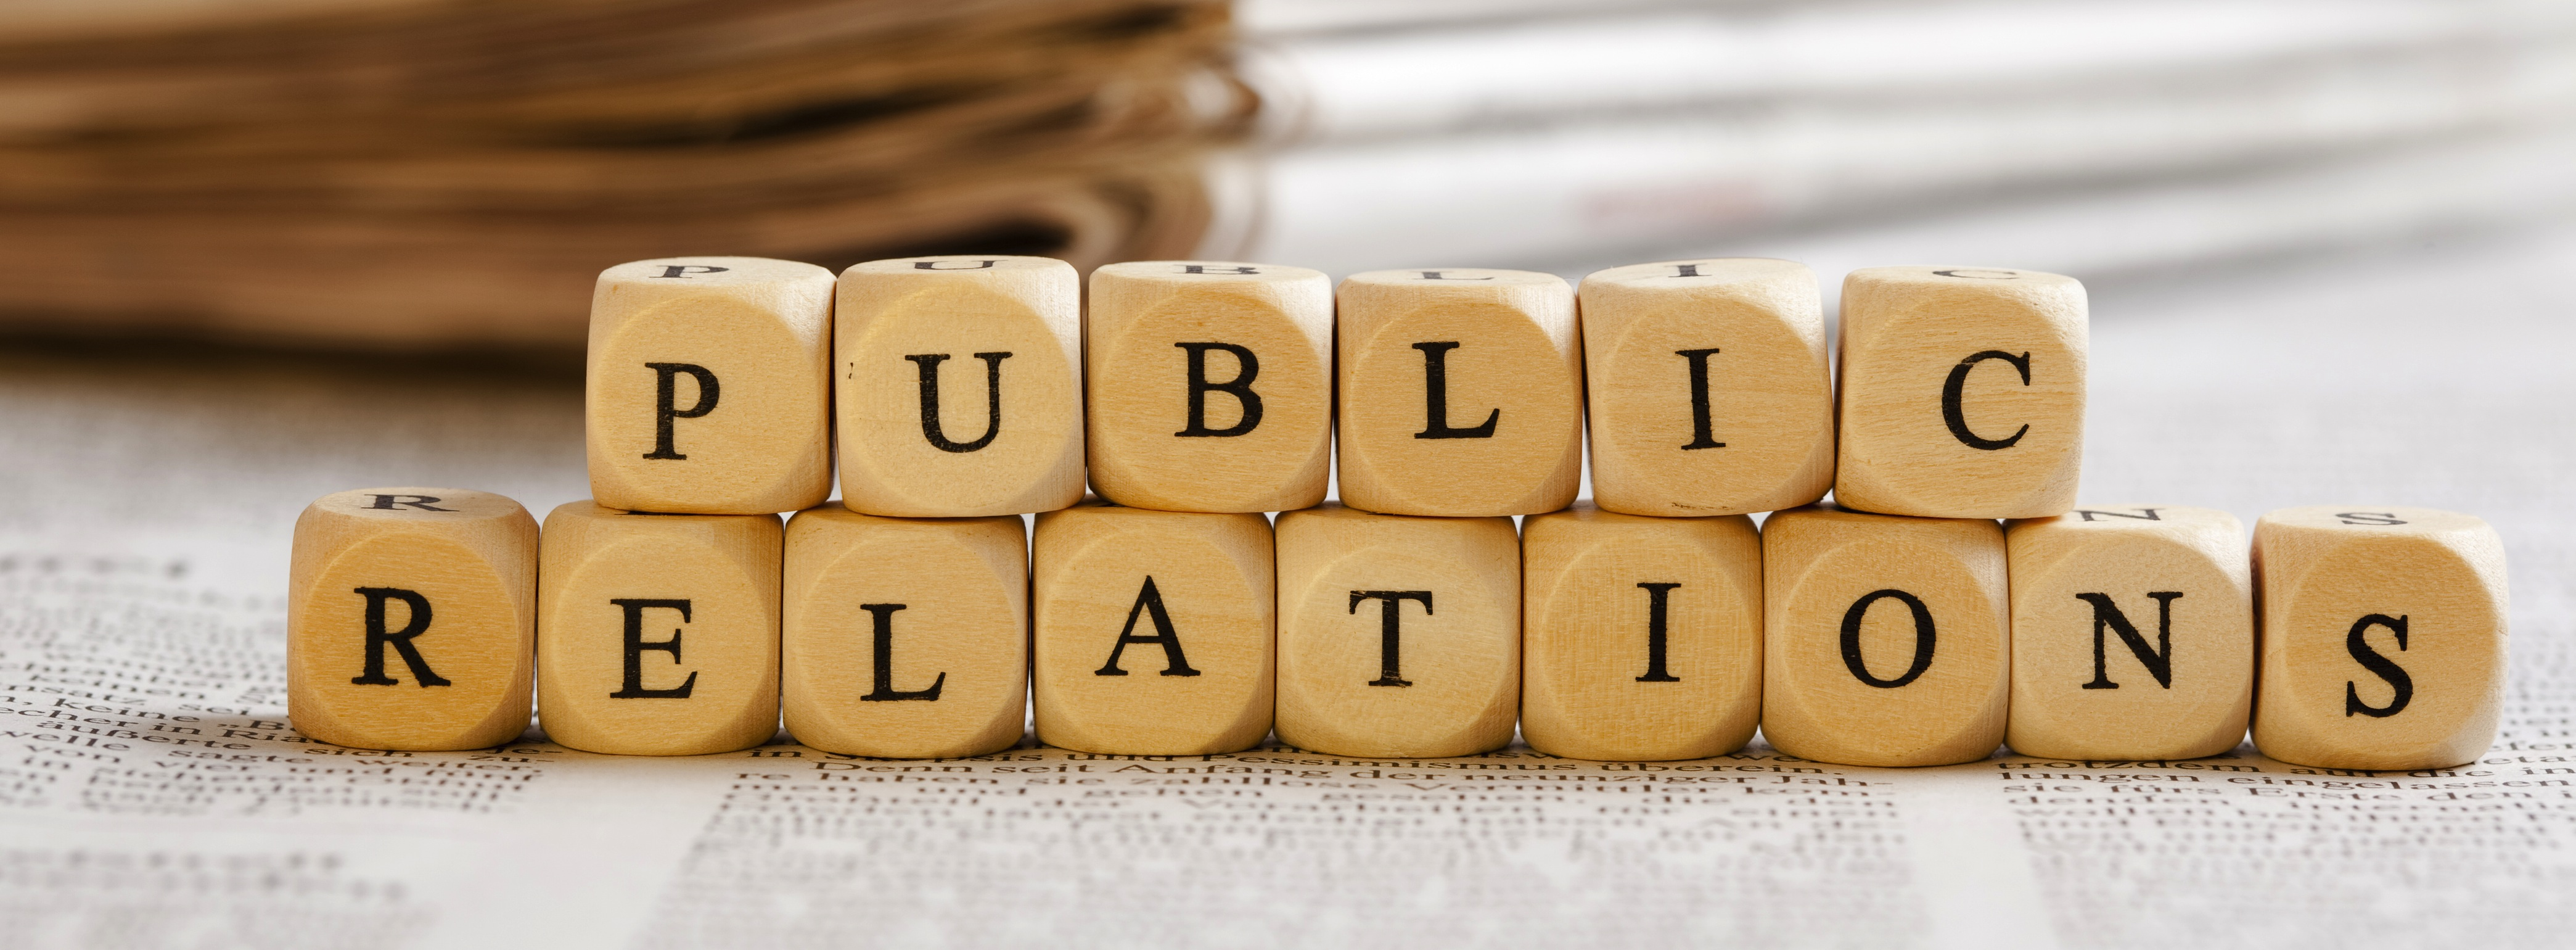 SMM | The silver lining of public relations